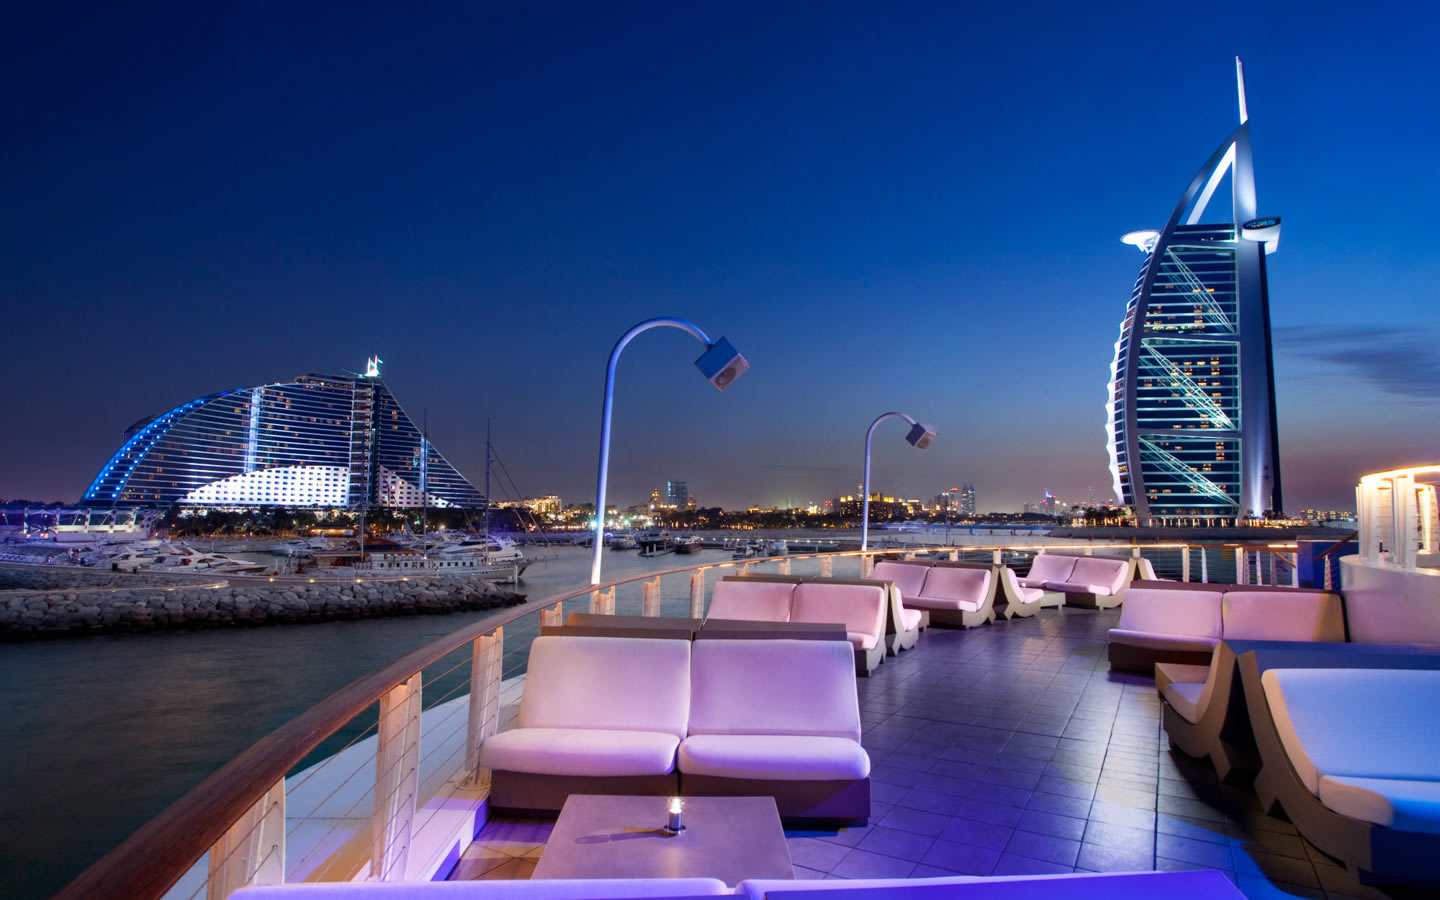 15 Best Outdoor Terraces in Dubai - 360 Jumeirah Beach Hotel